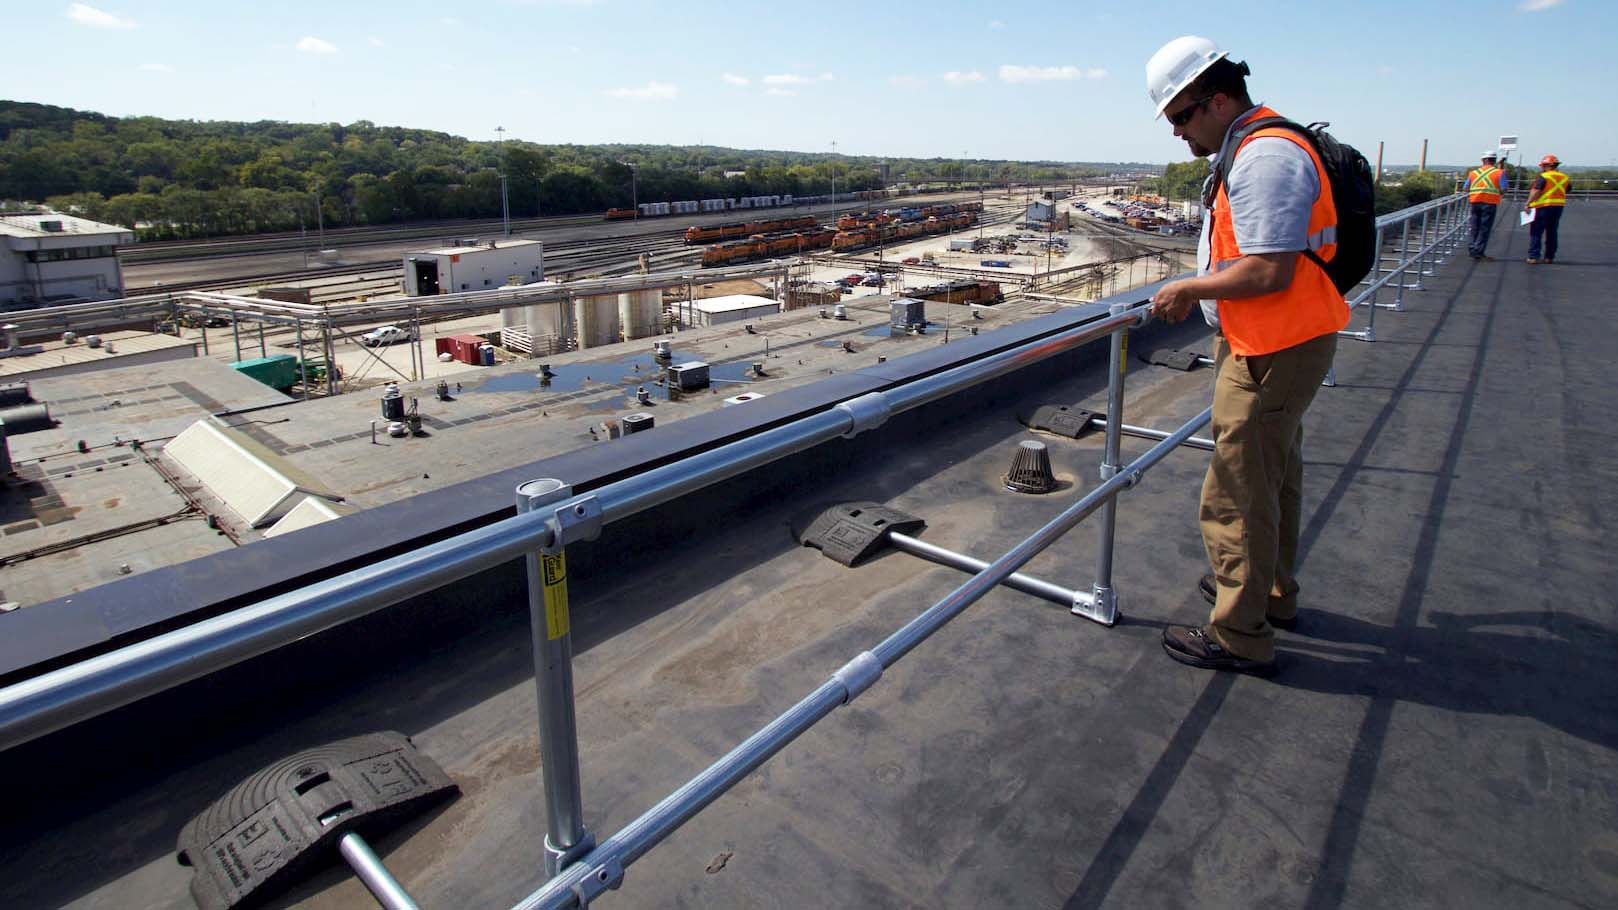 Installing KeeGuard fall protection railing